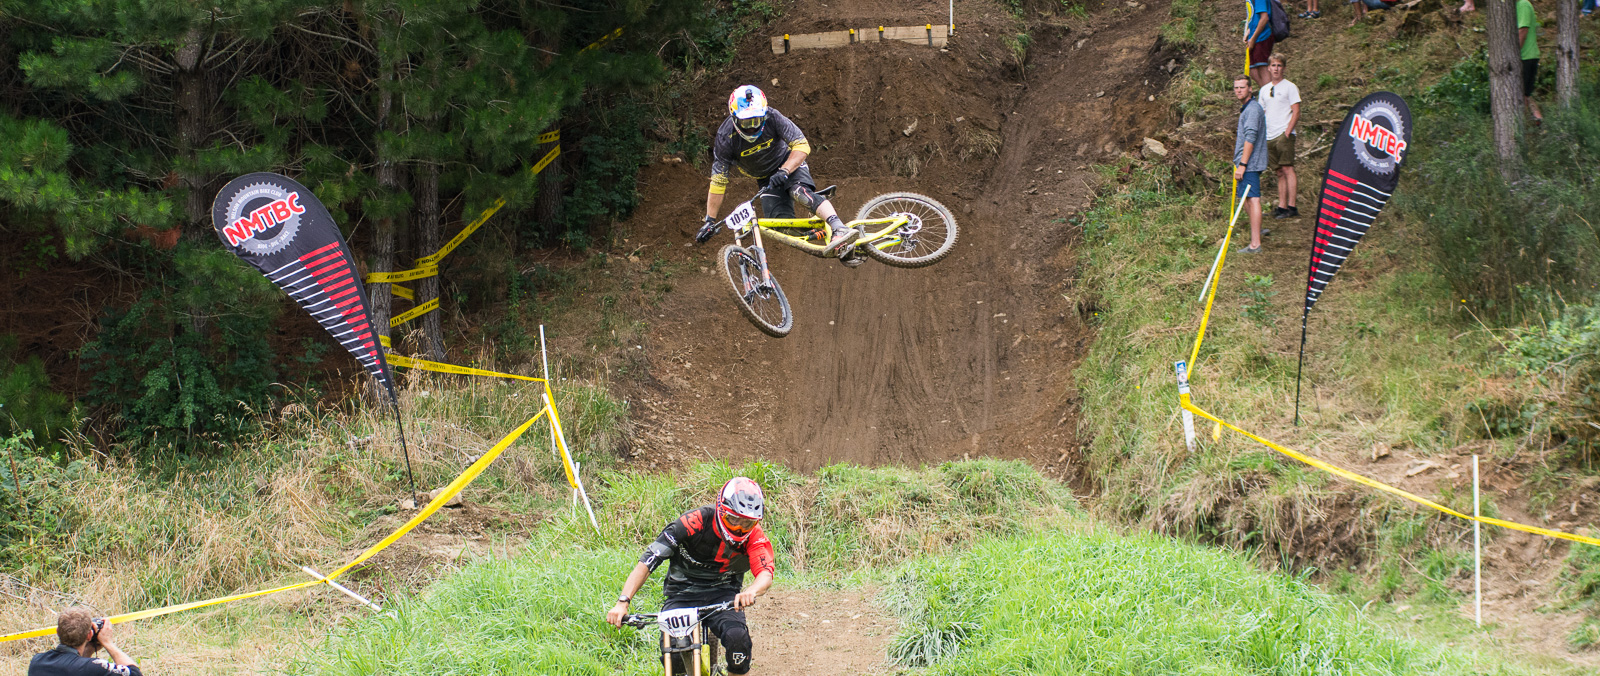 Macdonald follows Blenkinsop over the money booter during DH practice. All photos in this article are by Digby Shaw.